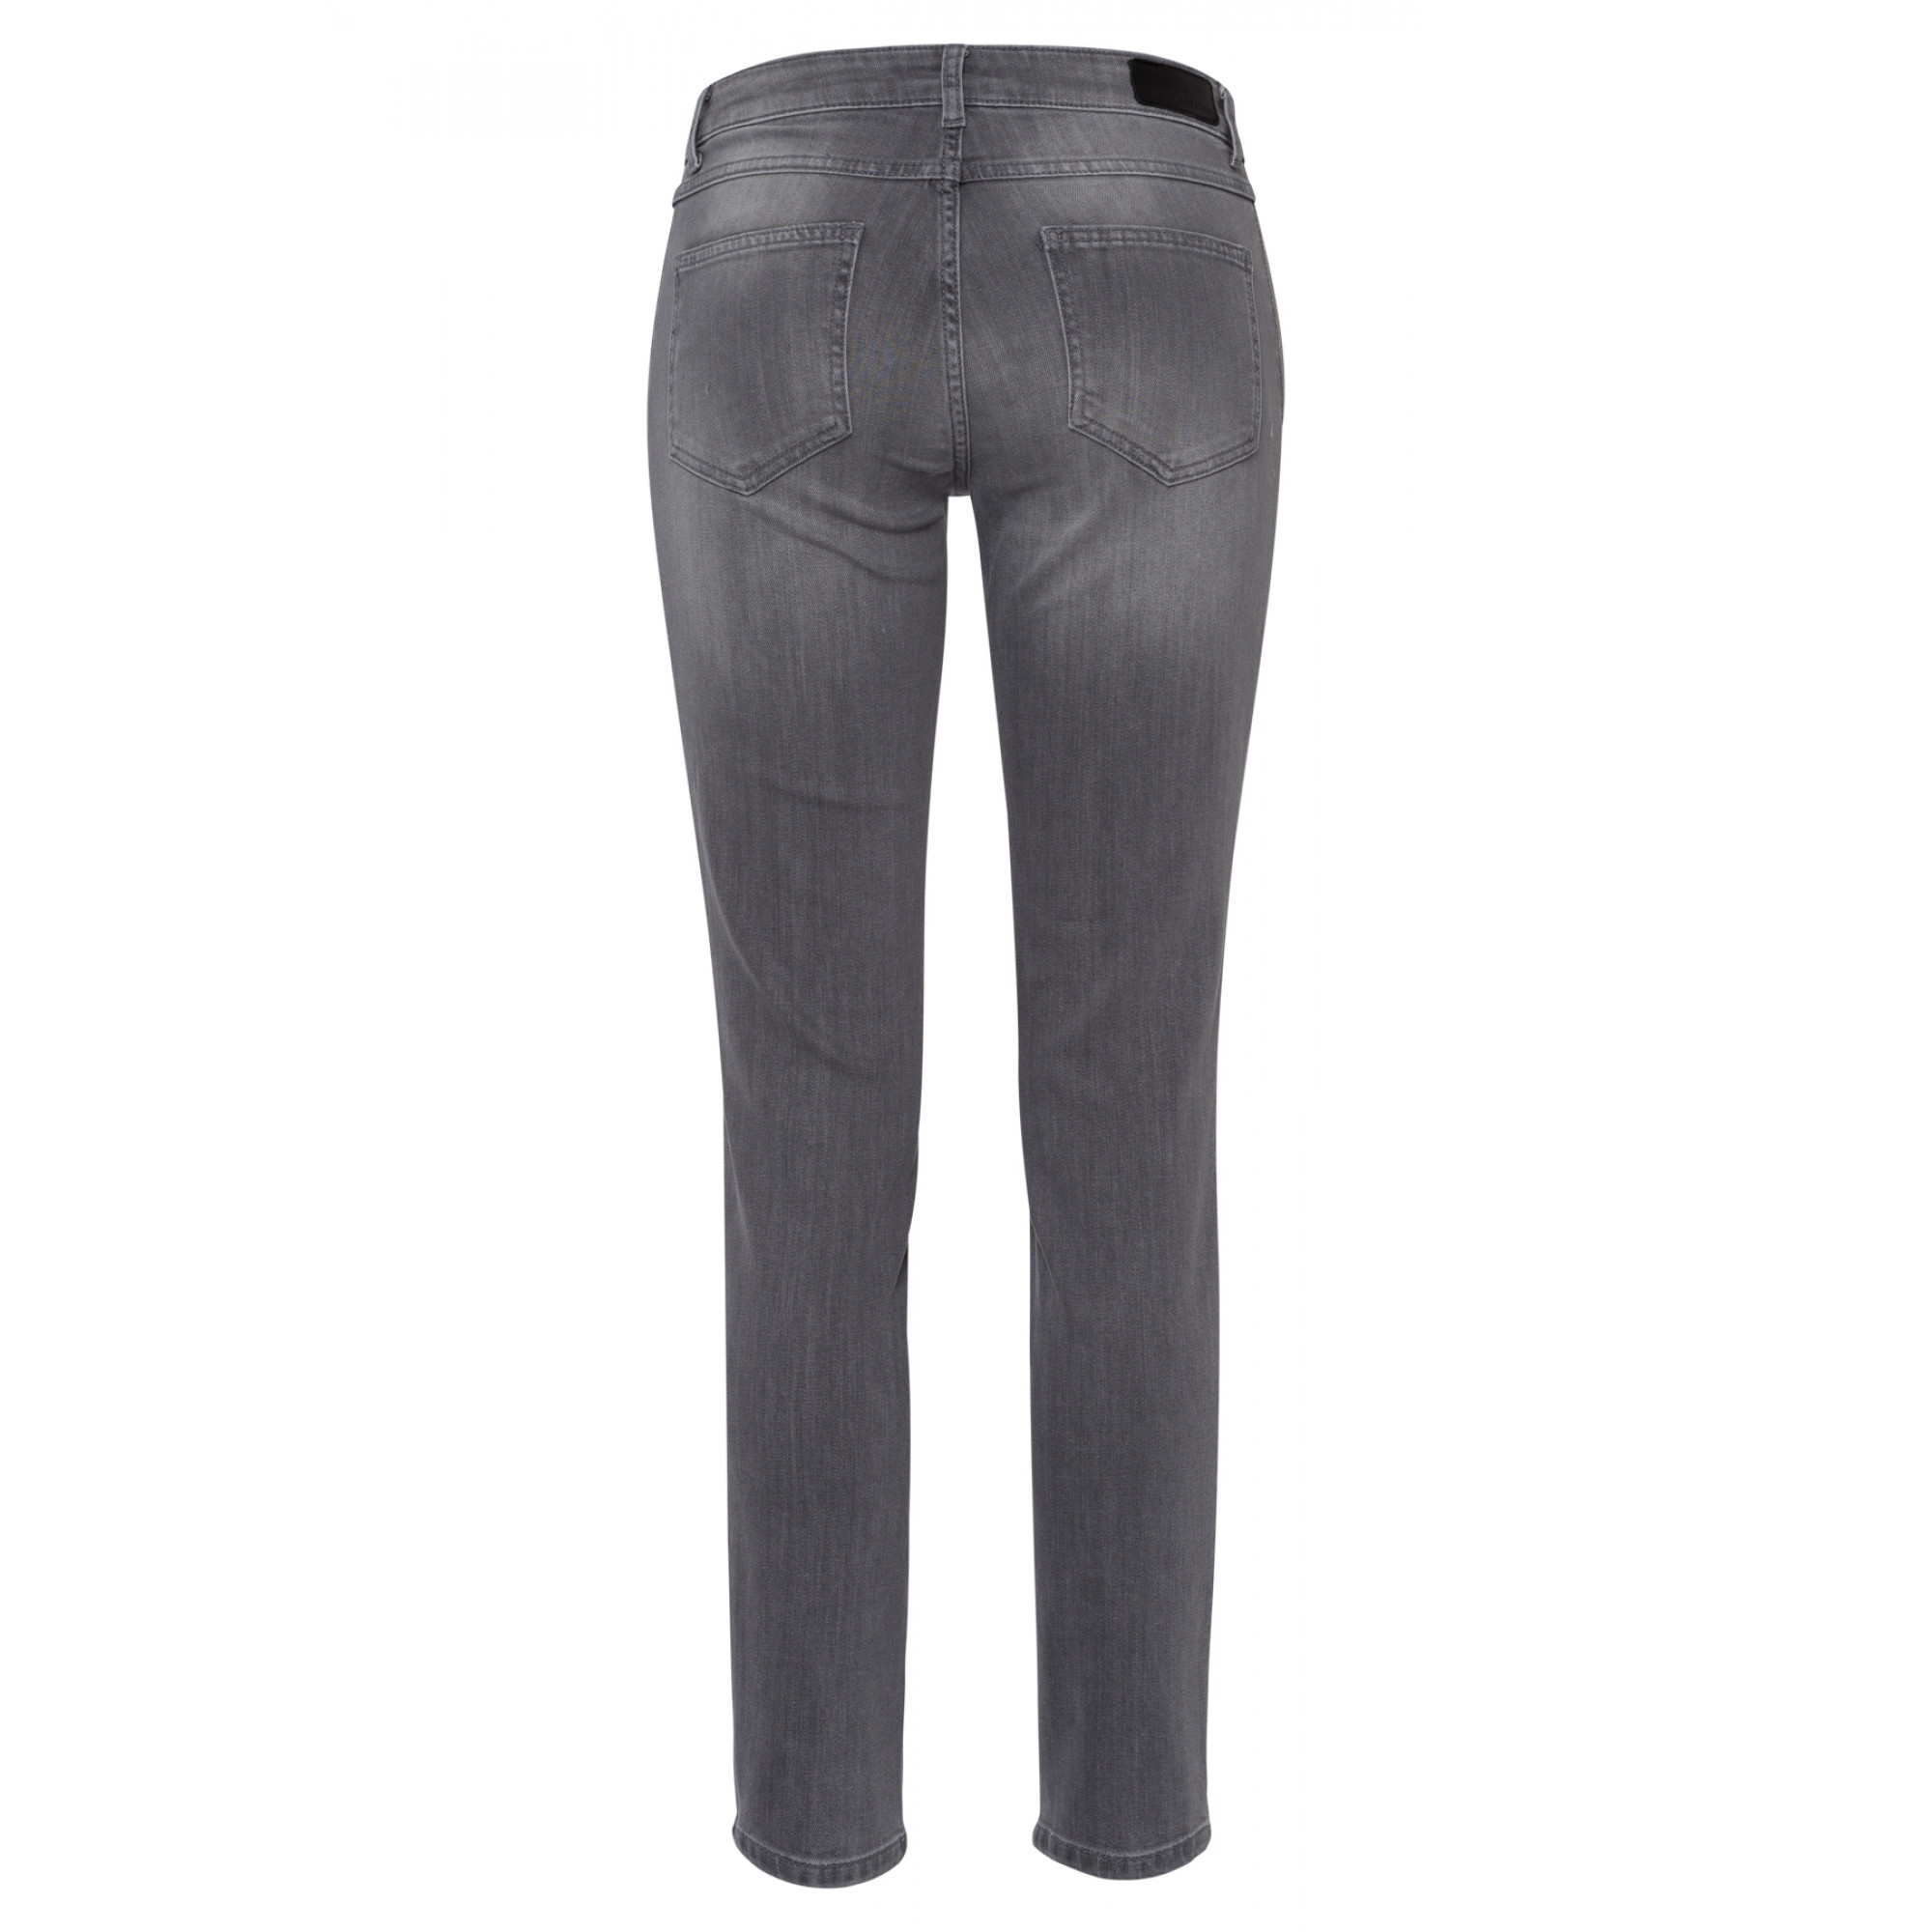 Five Pocket Jeans, grau, Hazel 91824502-0967 3